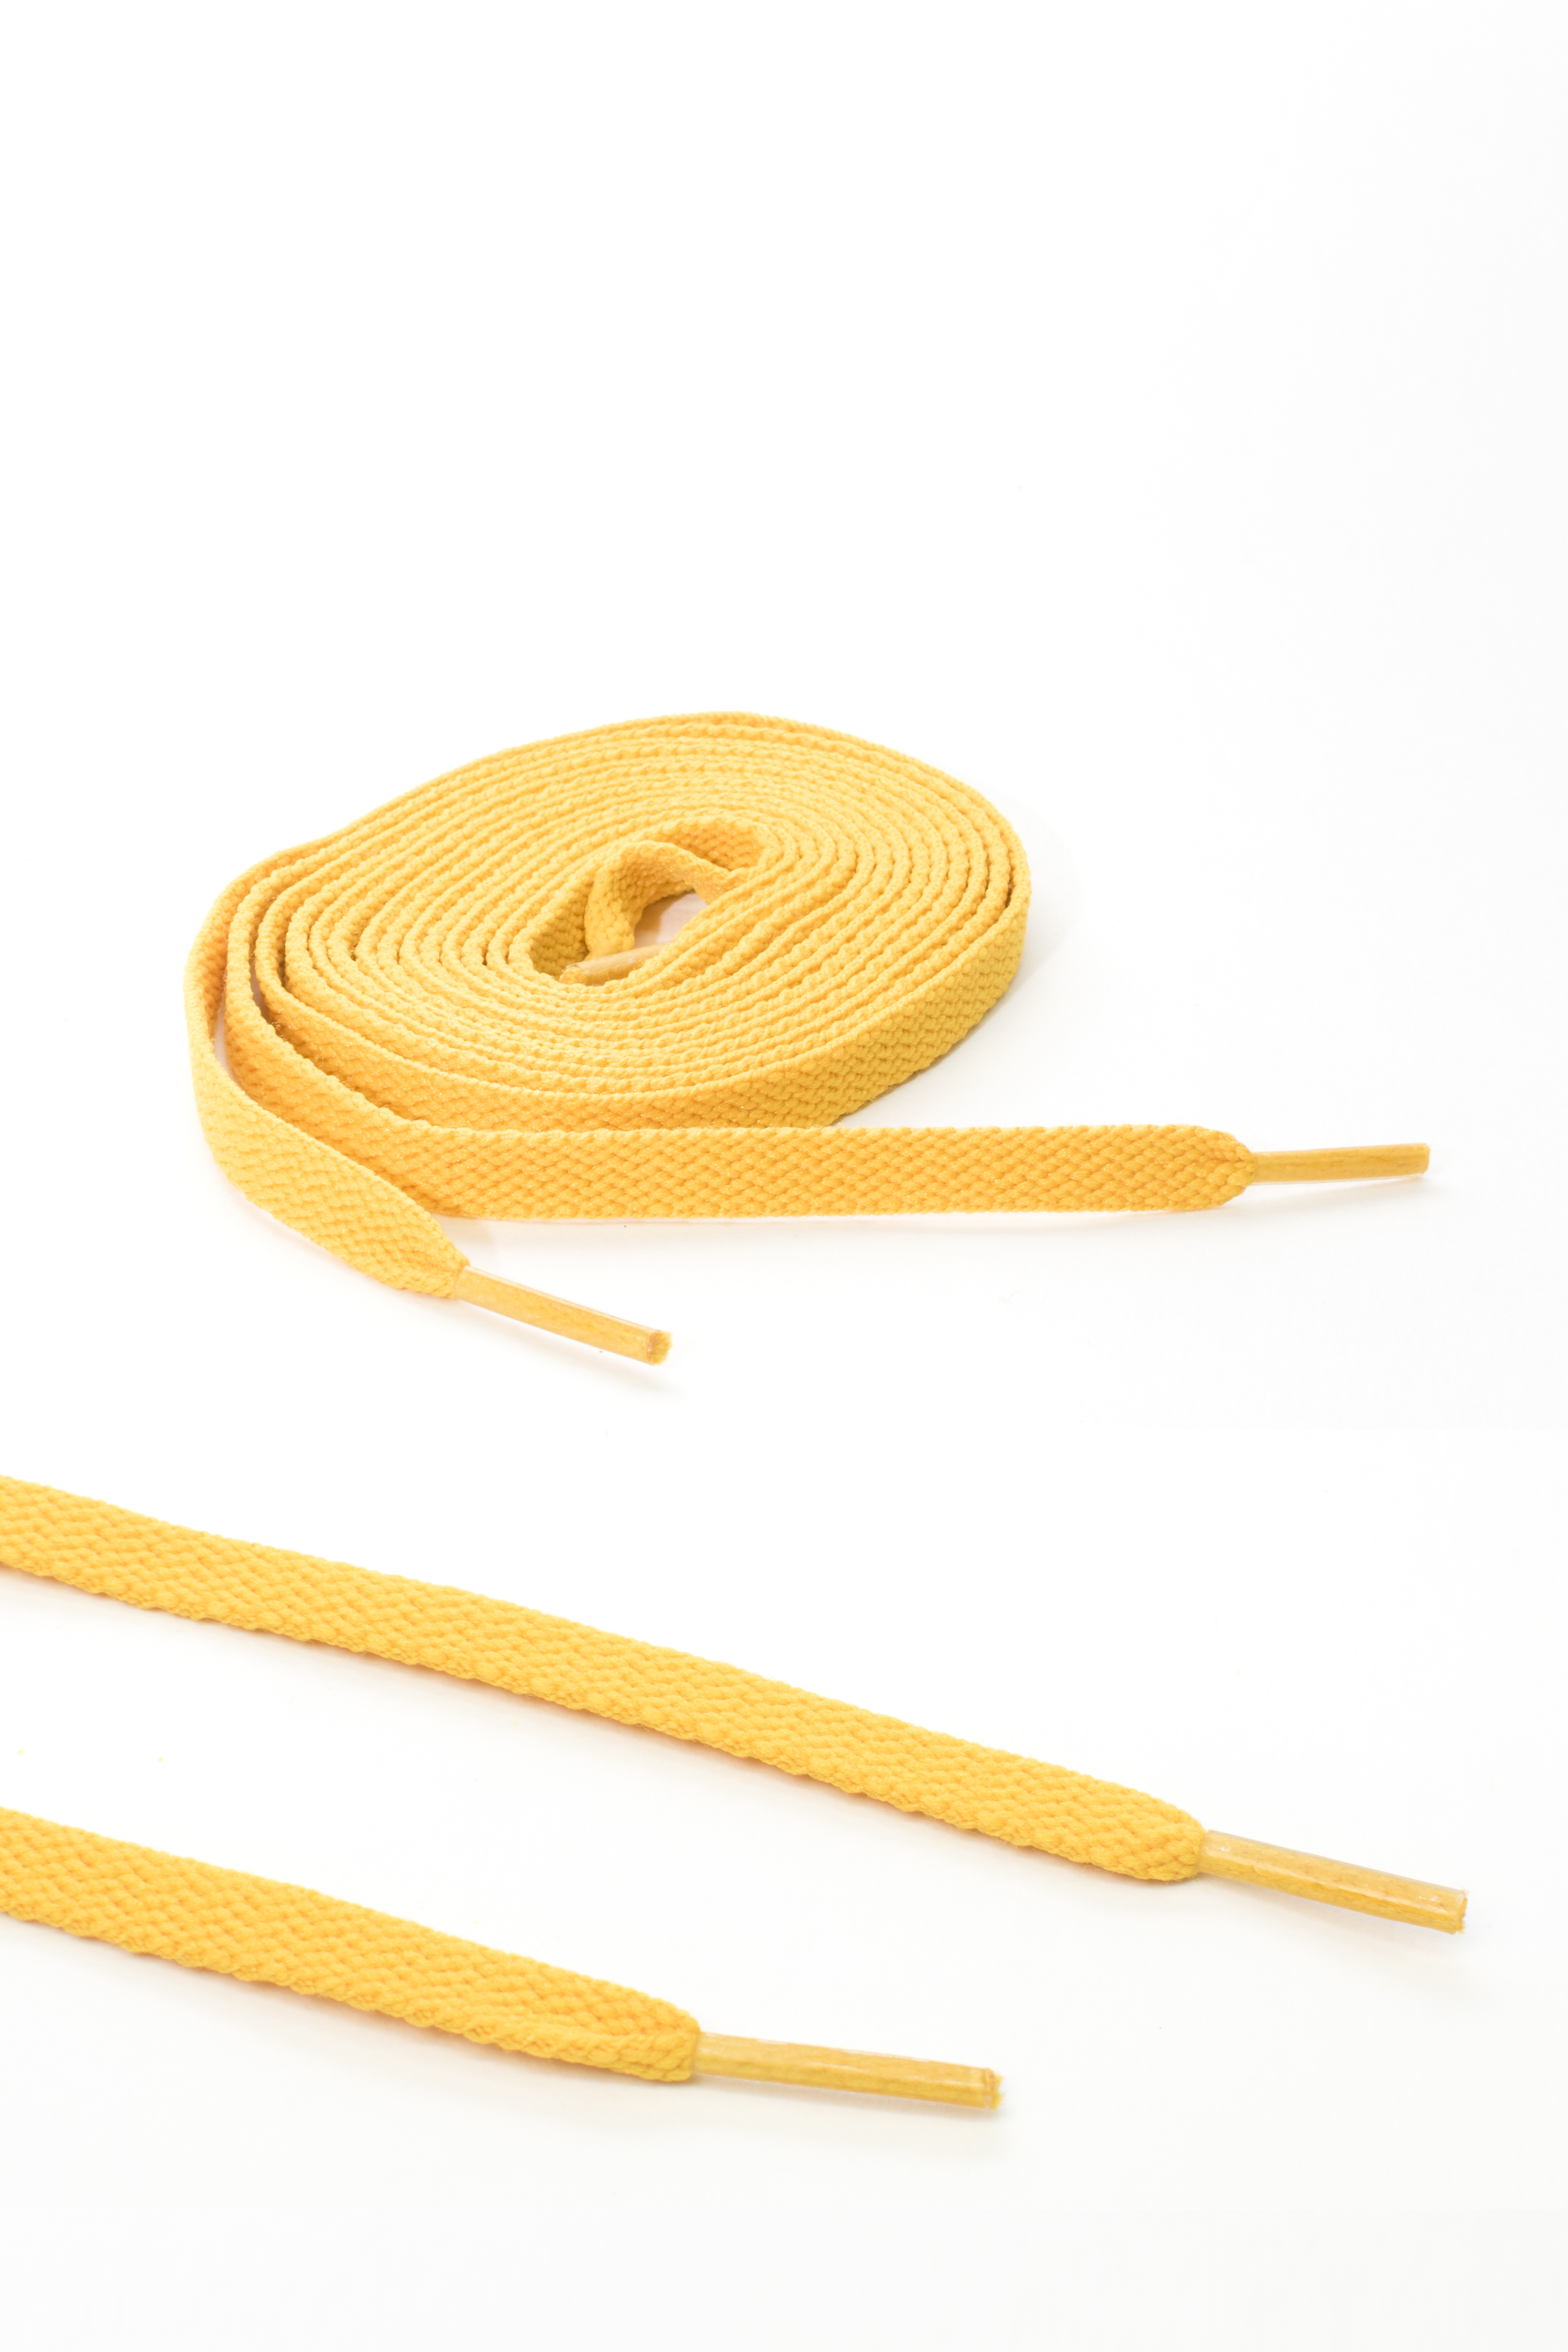 Union Yellow/Gold Laces (2 Lengths)